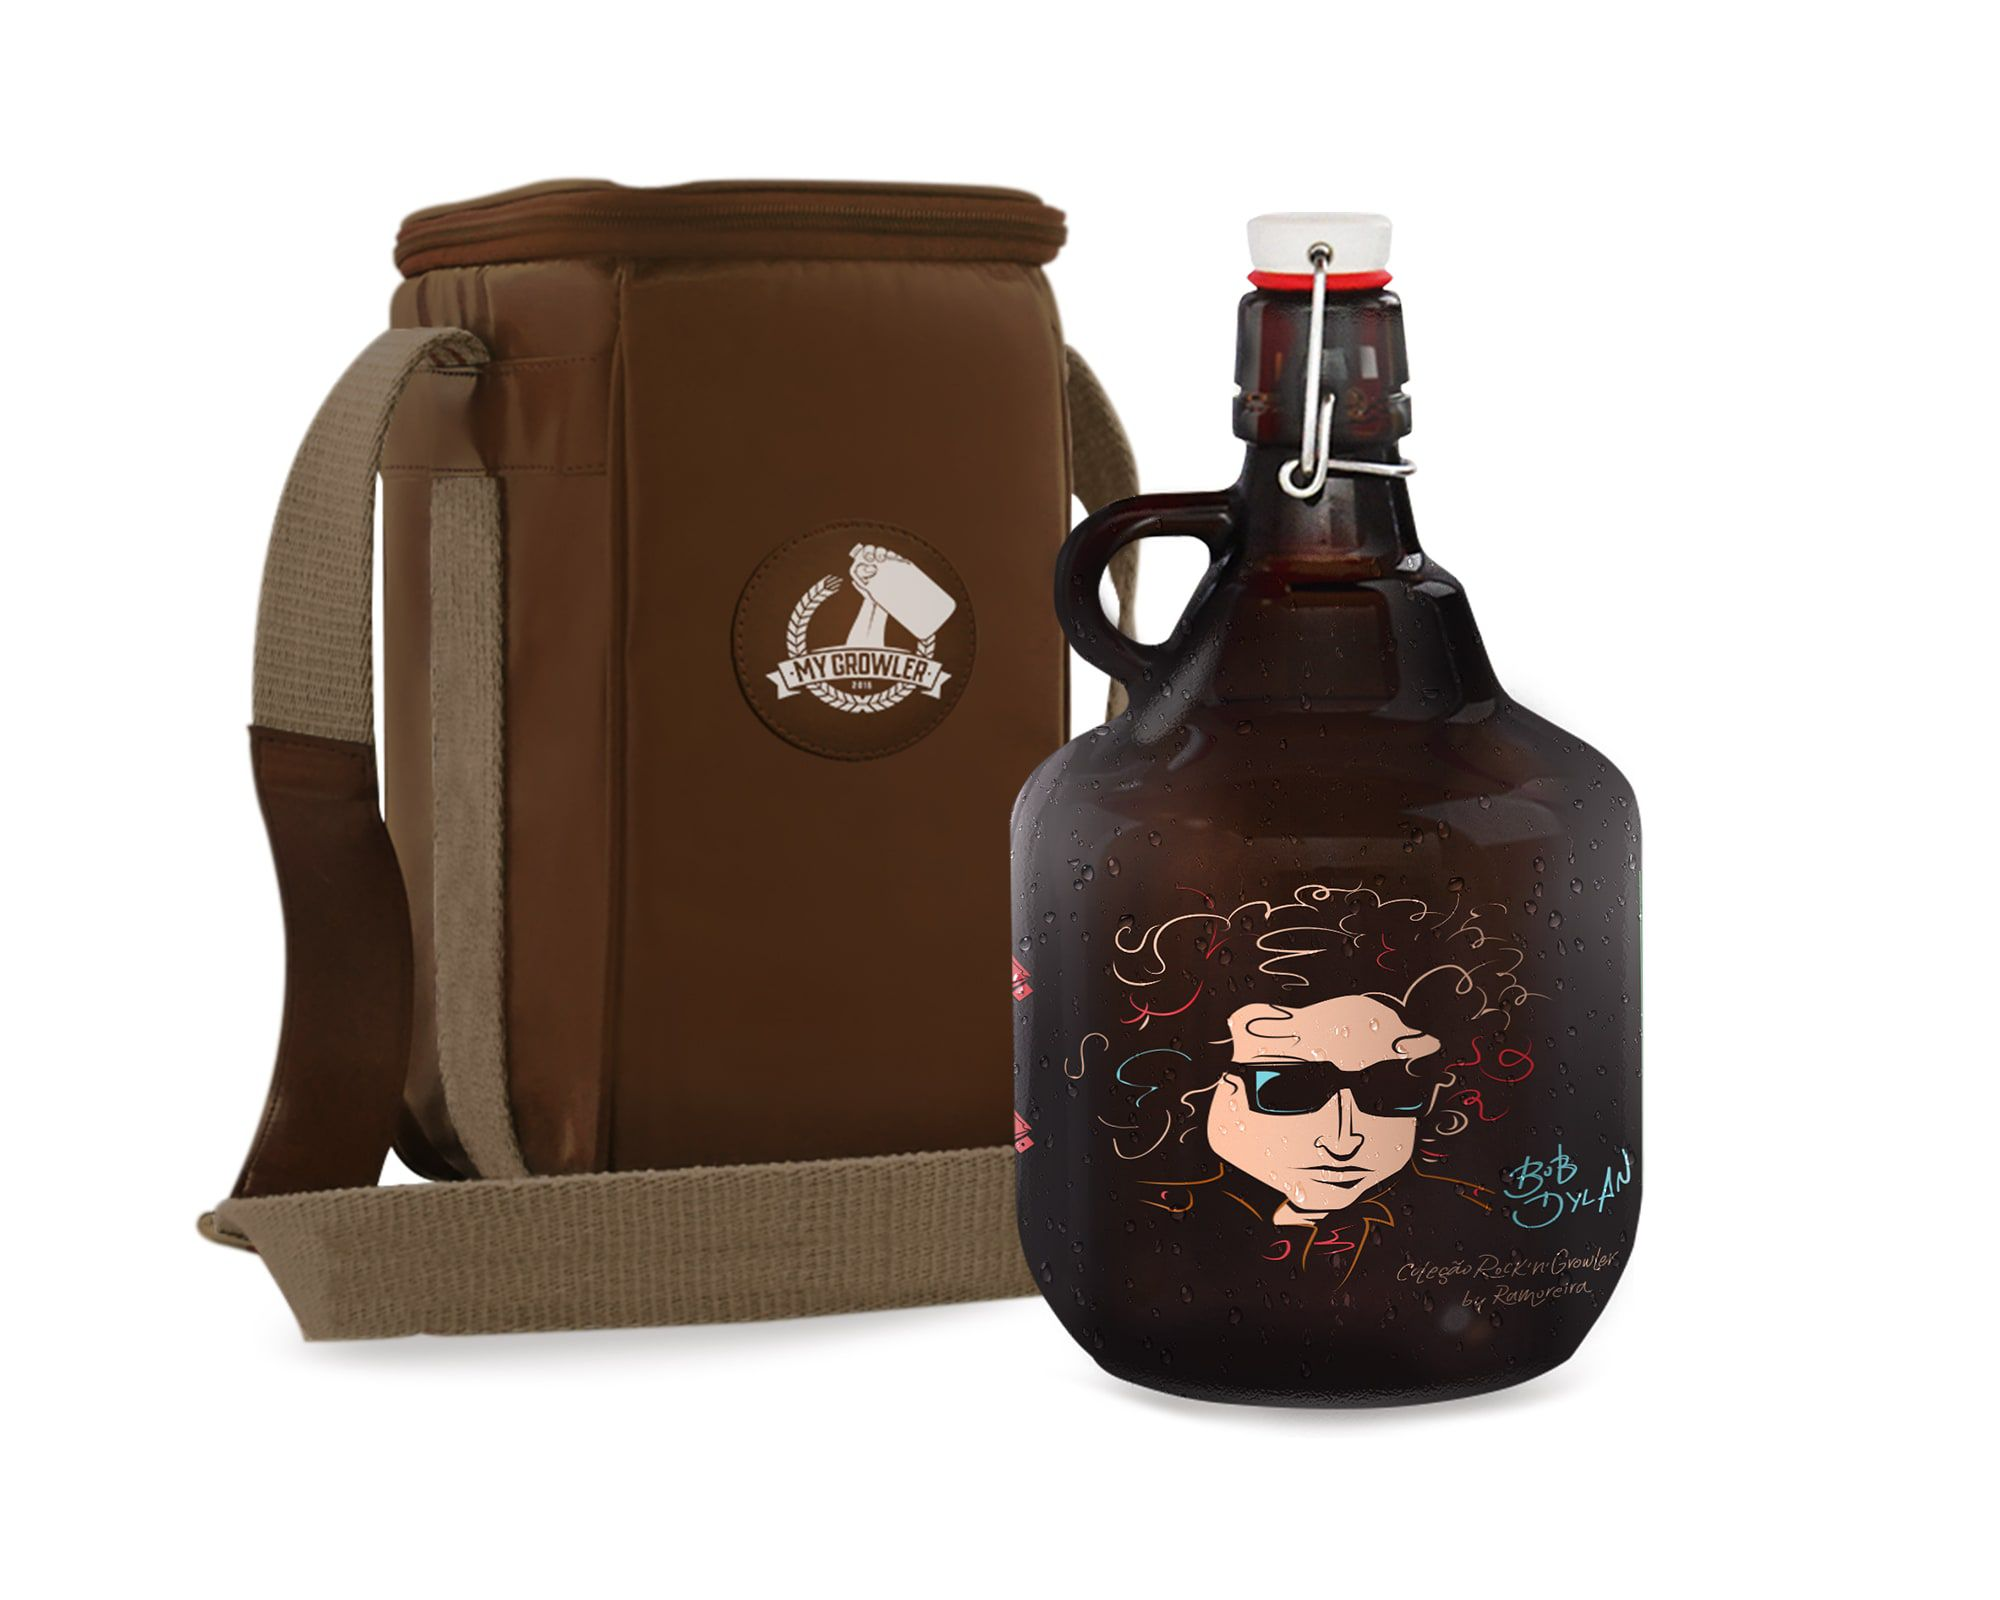 KIT TRAVEL #3: Grand Growler 2l  Bob Dylan + Growler Bag Travel 1 growler Bege